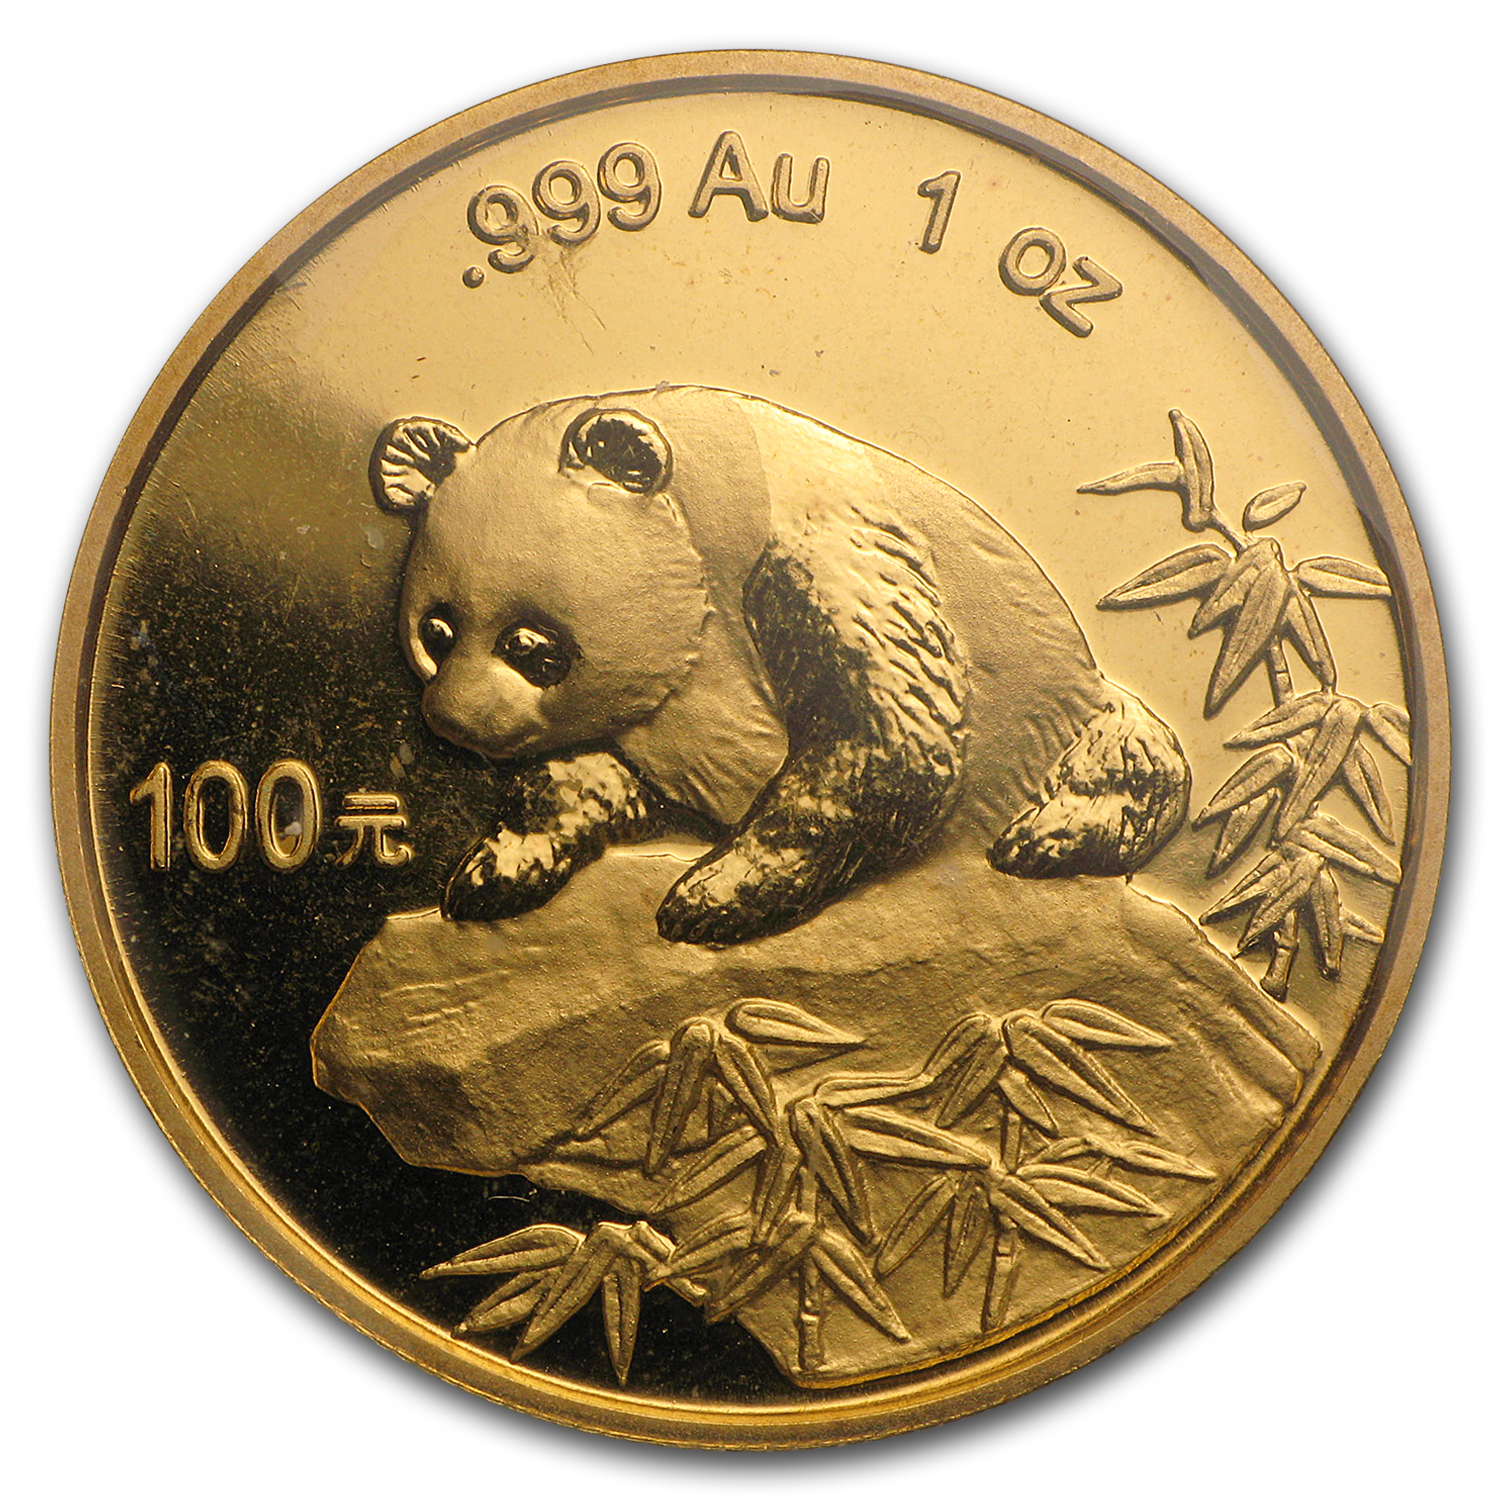 1999 1 oz Gold Chinese Panda Large Date w/Serif BU (Sealed)